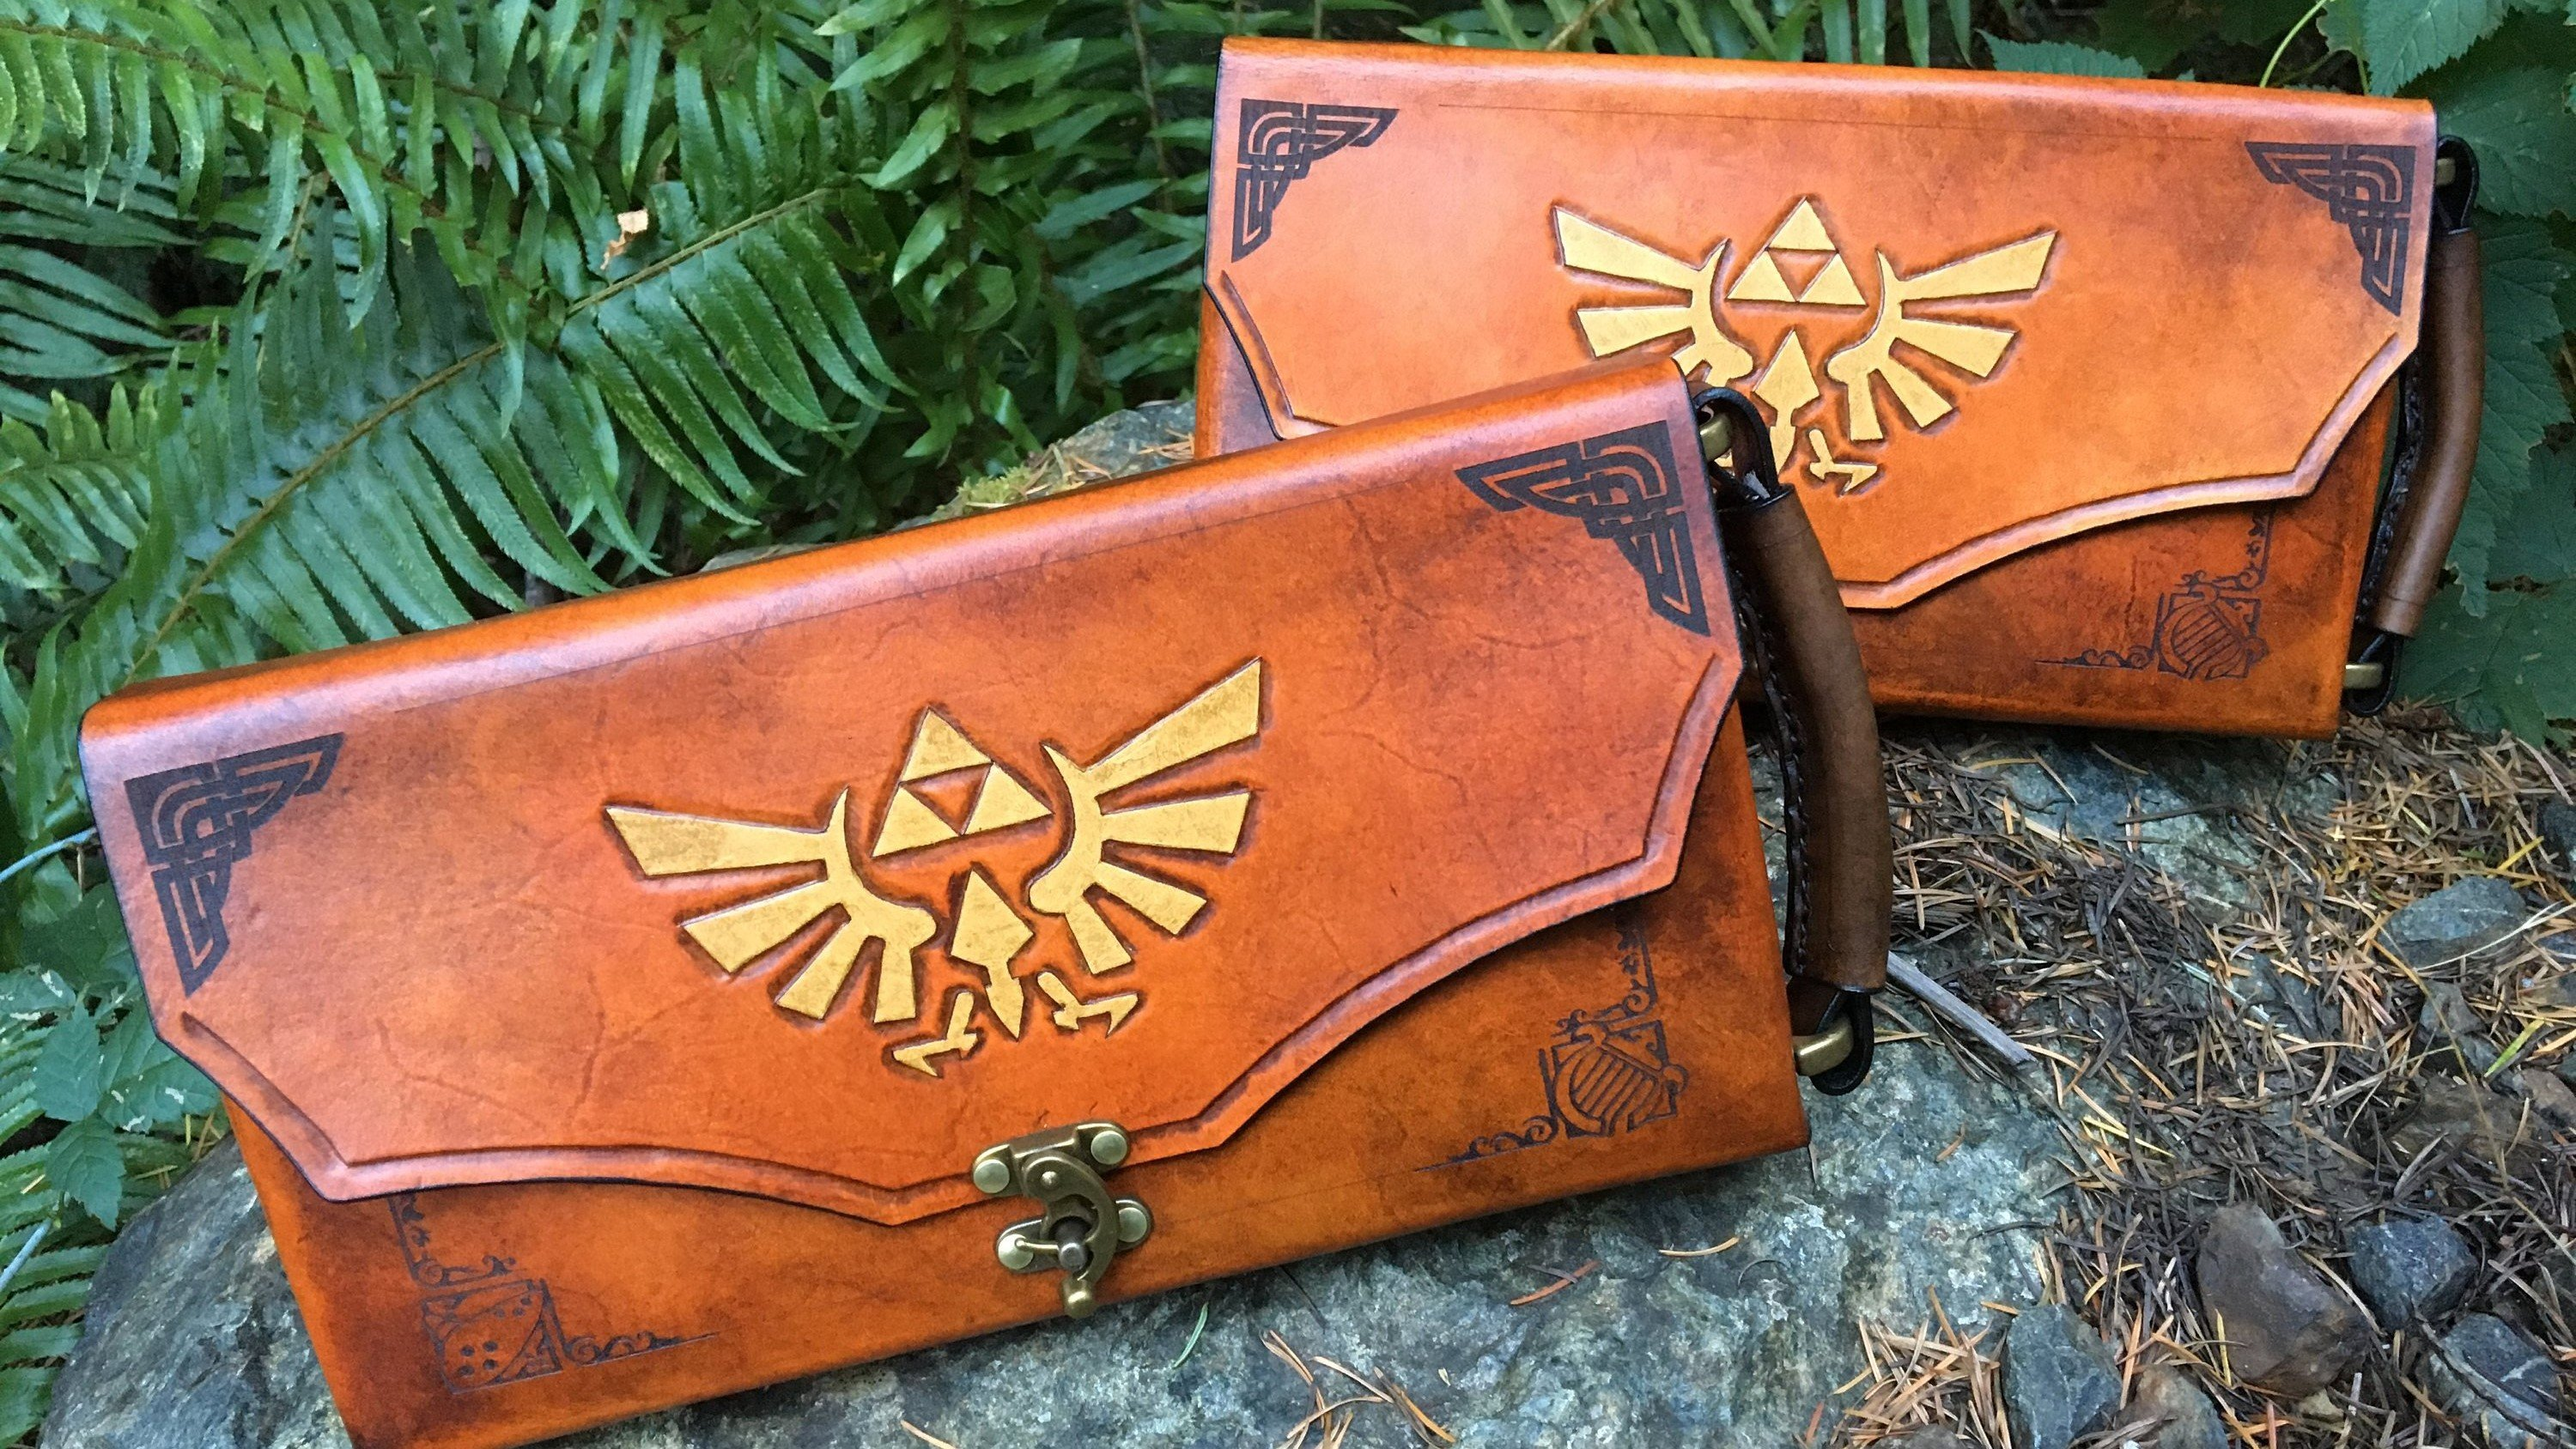 The Legend of Zelda Leather-Bound Nintendo Switch Case Is Fit for a Hero